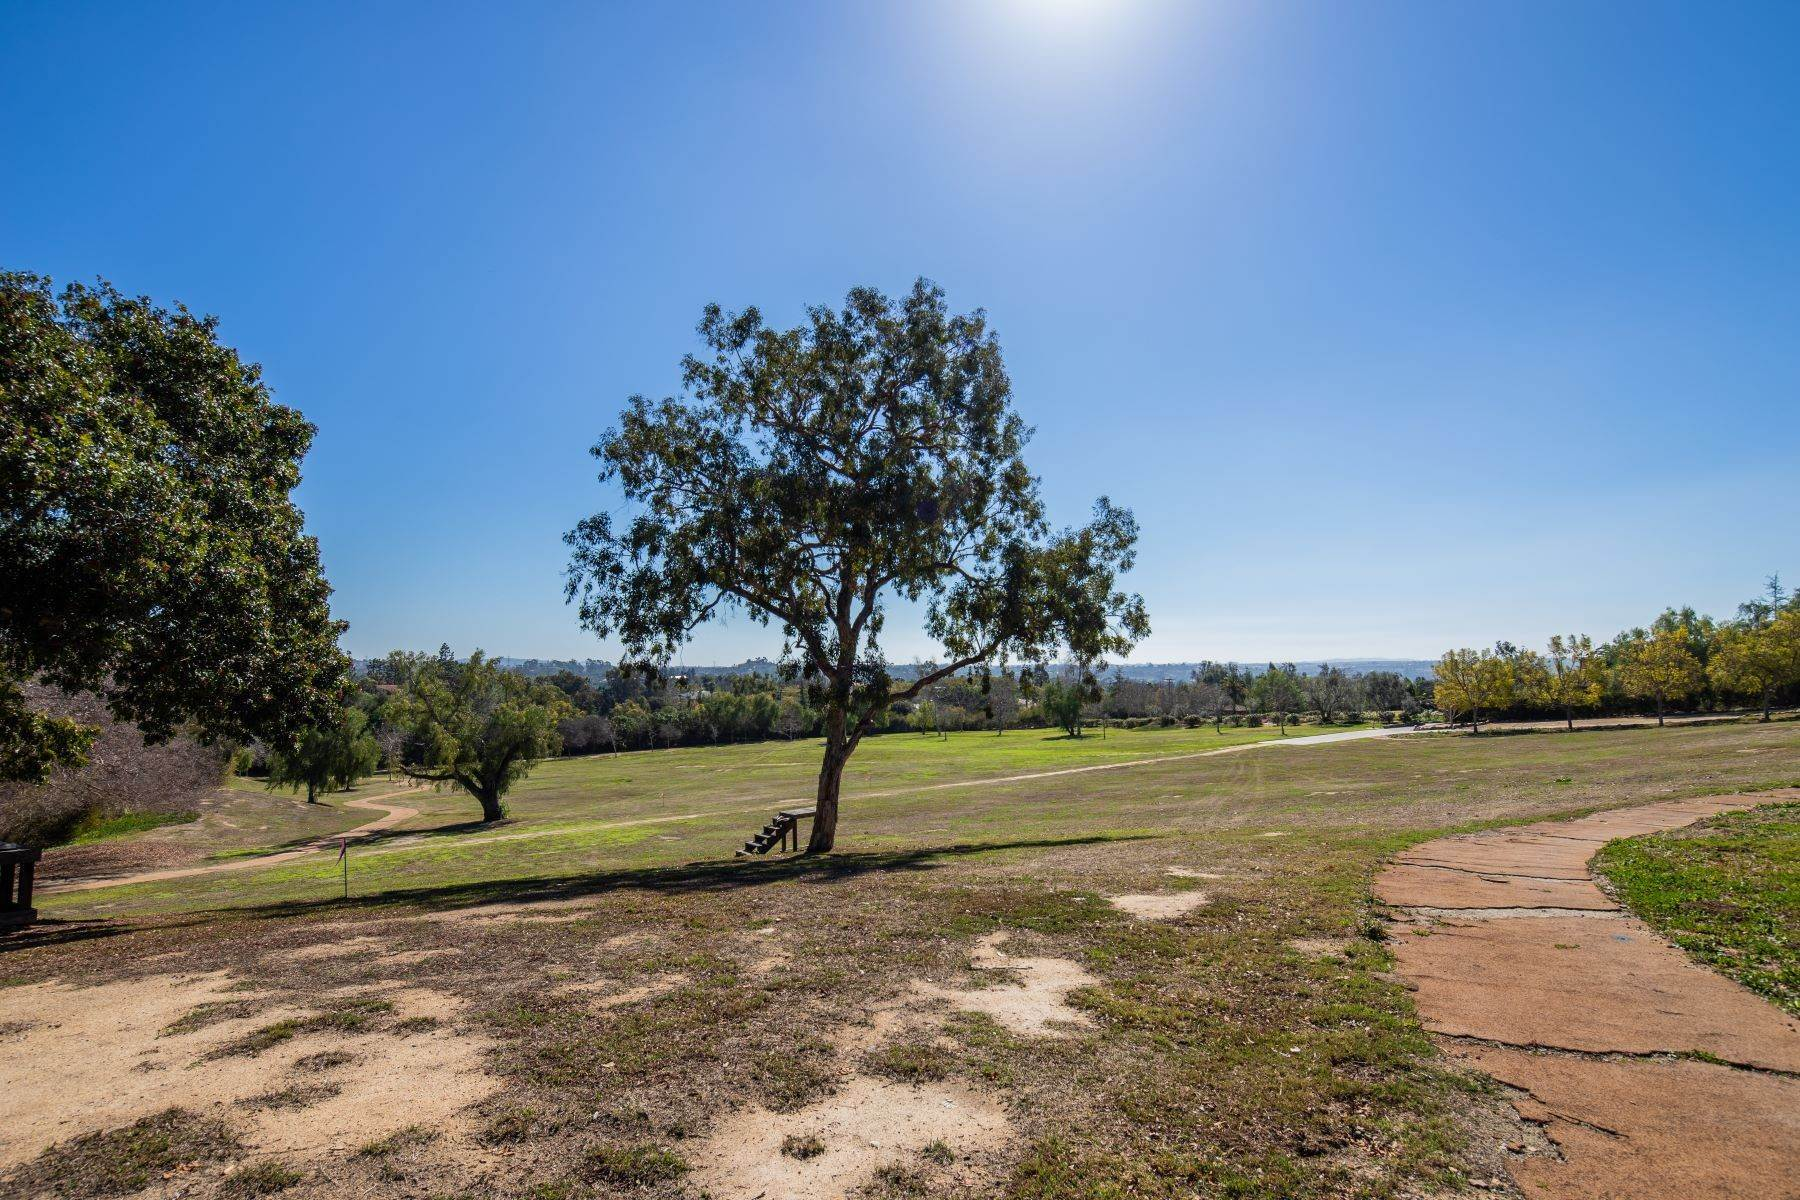 7. Land for Sale at 17048 El Mirador, Rancho Santa Fe, CA 92067 17048 El Mirador Rancho Santa Fe, California 92067 United States